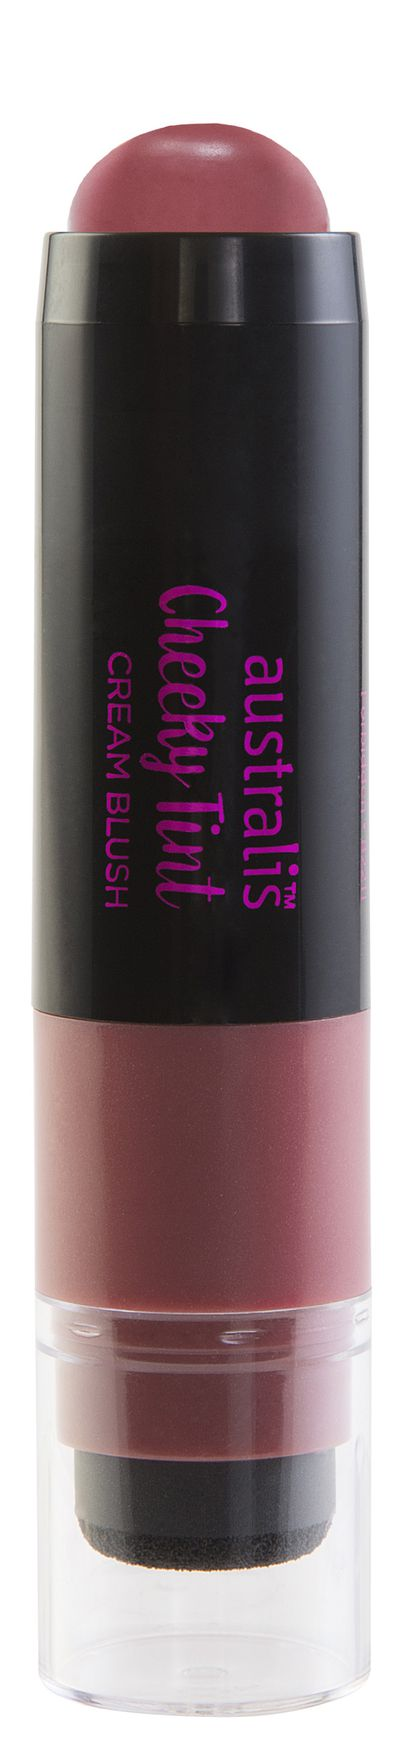 "<a href=""https://www.australiscosmetics.com.au/product/z-82208/cheeky-tint"" target=""_blank"">Australis Cheeky Tint Cream Blush, $18.95.</a><br /> An easy-to-apply cream blush that offers buildable colour and a natural glow."